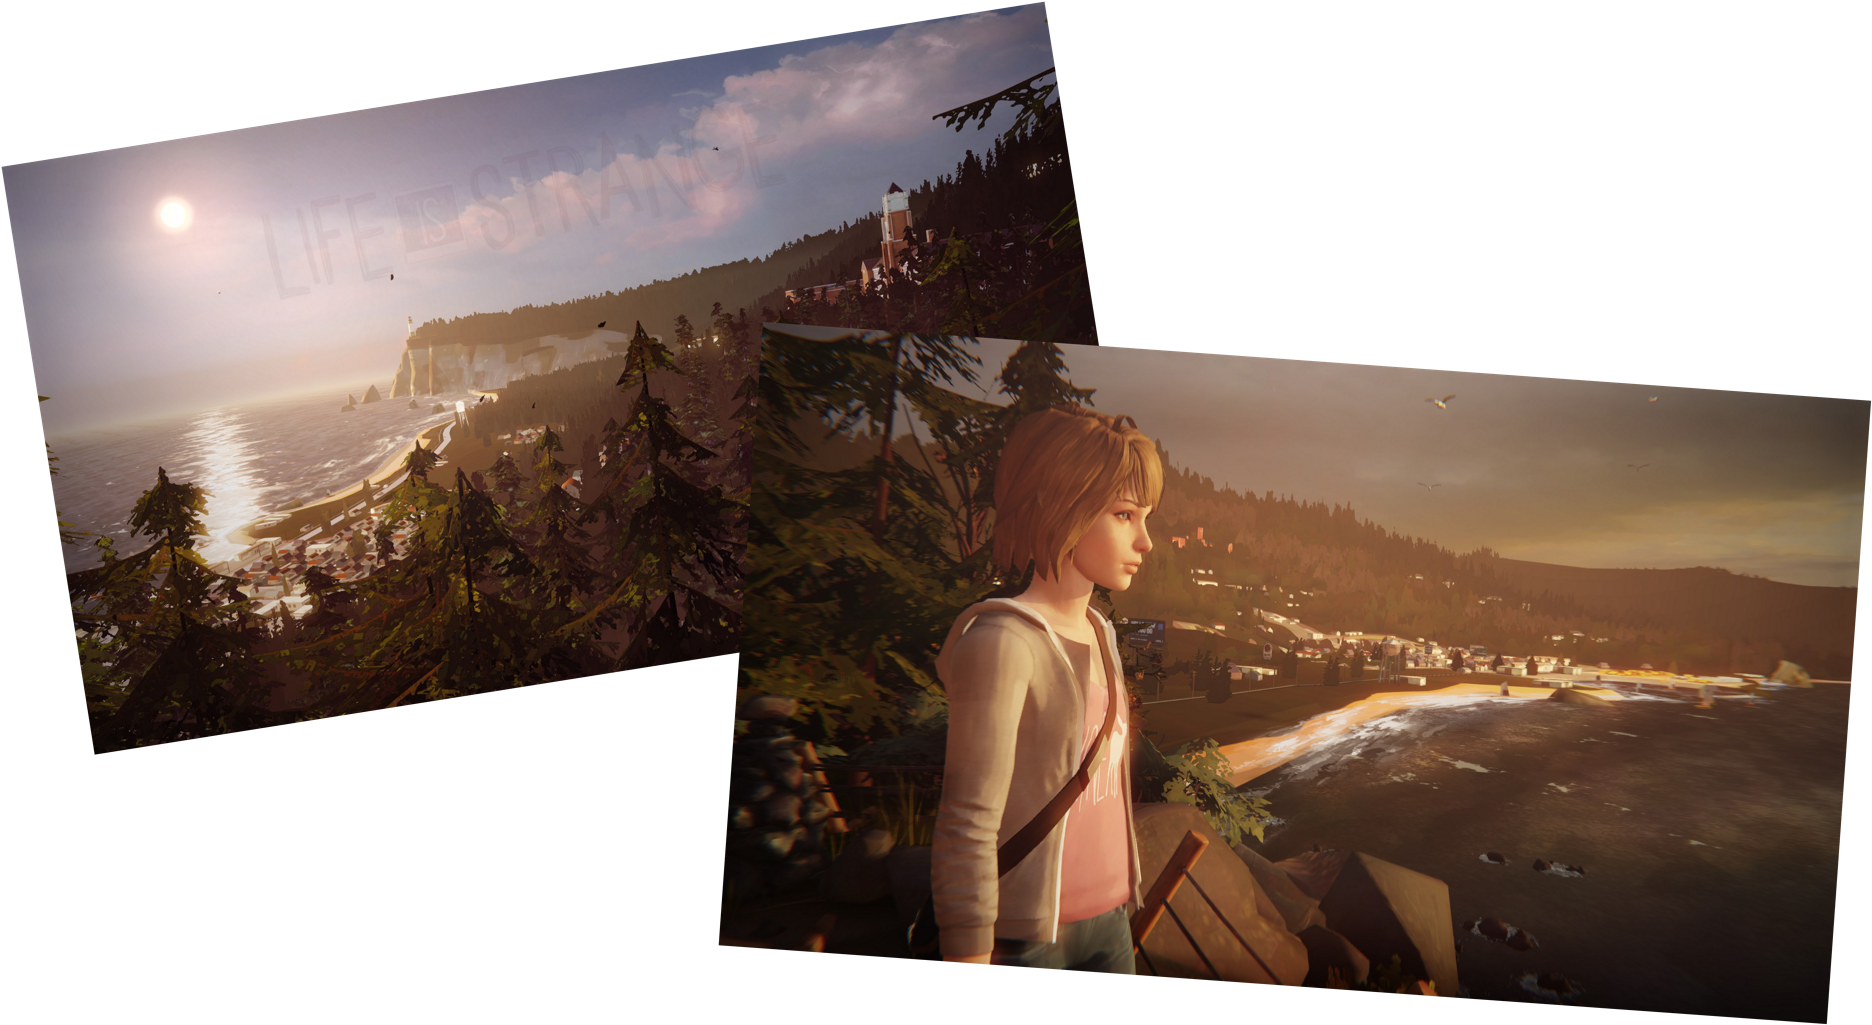 Life Is Strange Png - Painting Clipart (1920x1080), Png Download